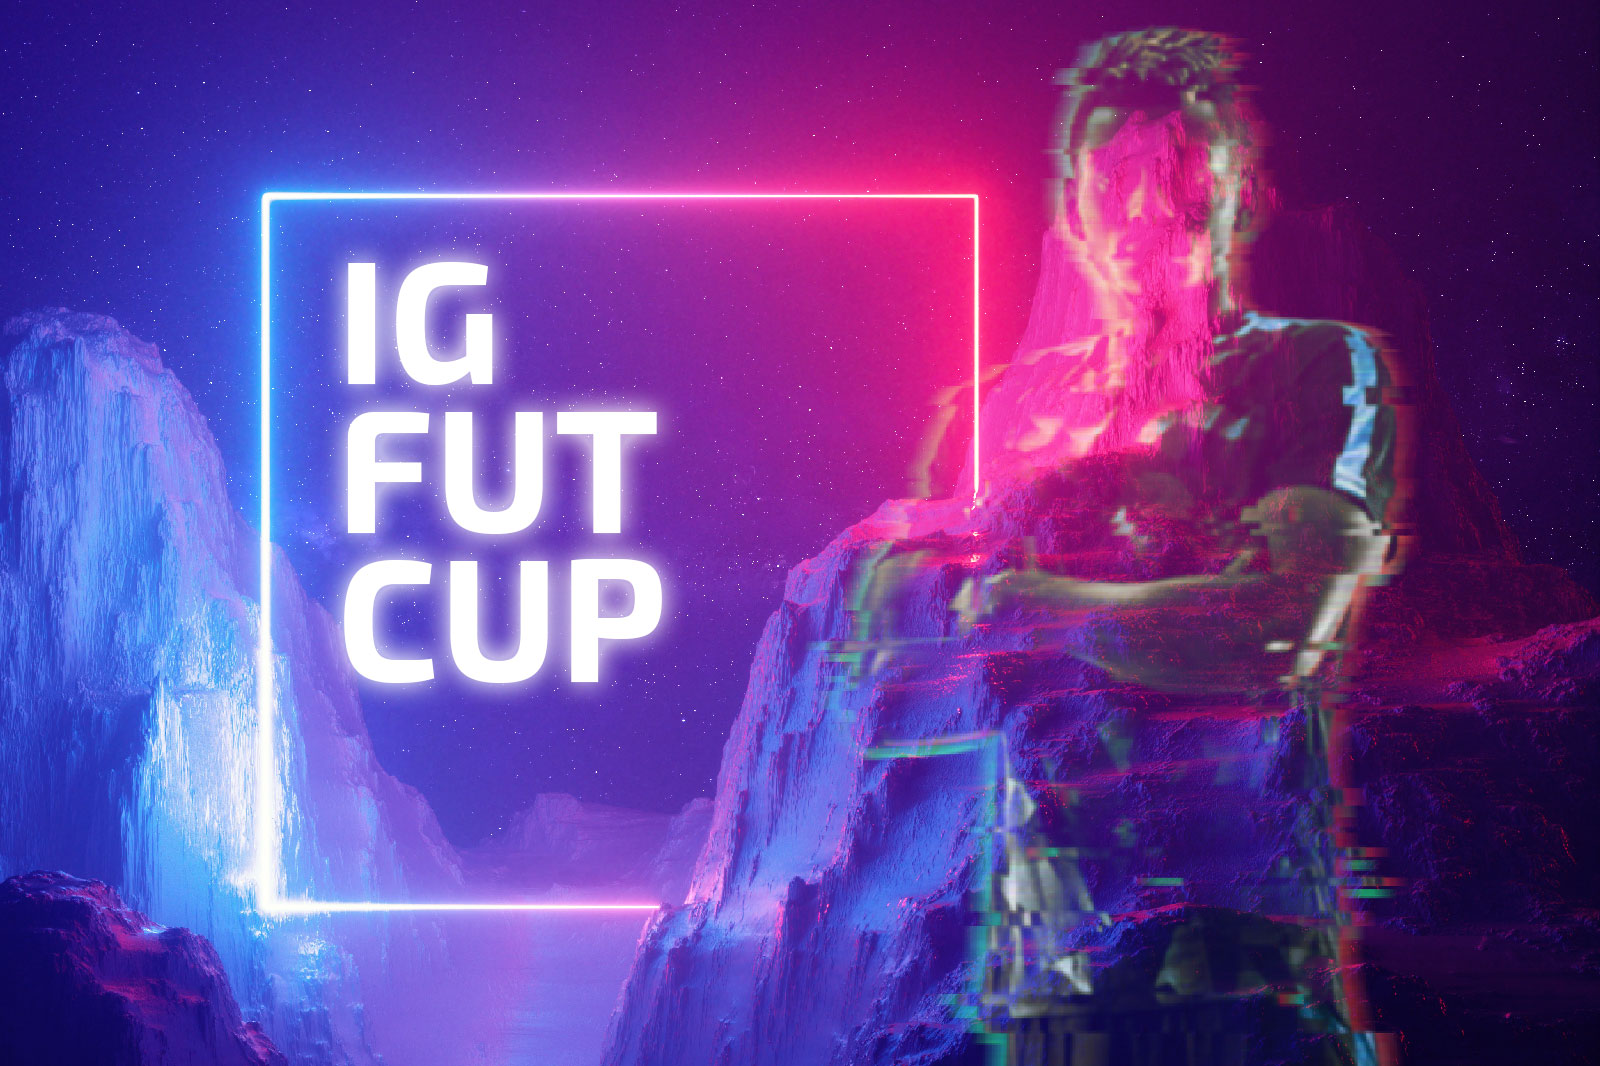 Sign up to this week's IG FUT Cup!